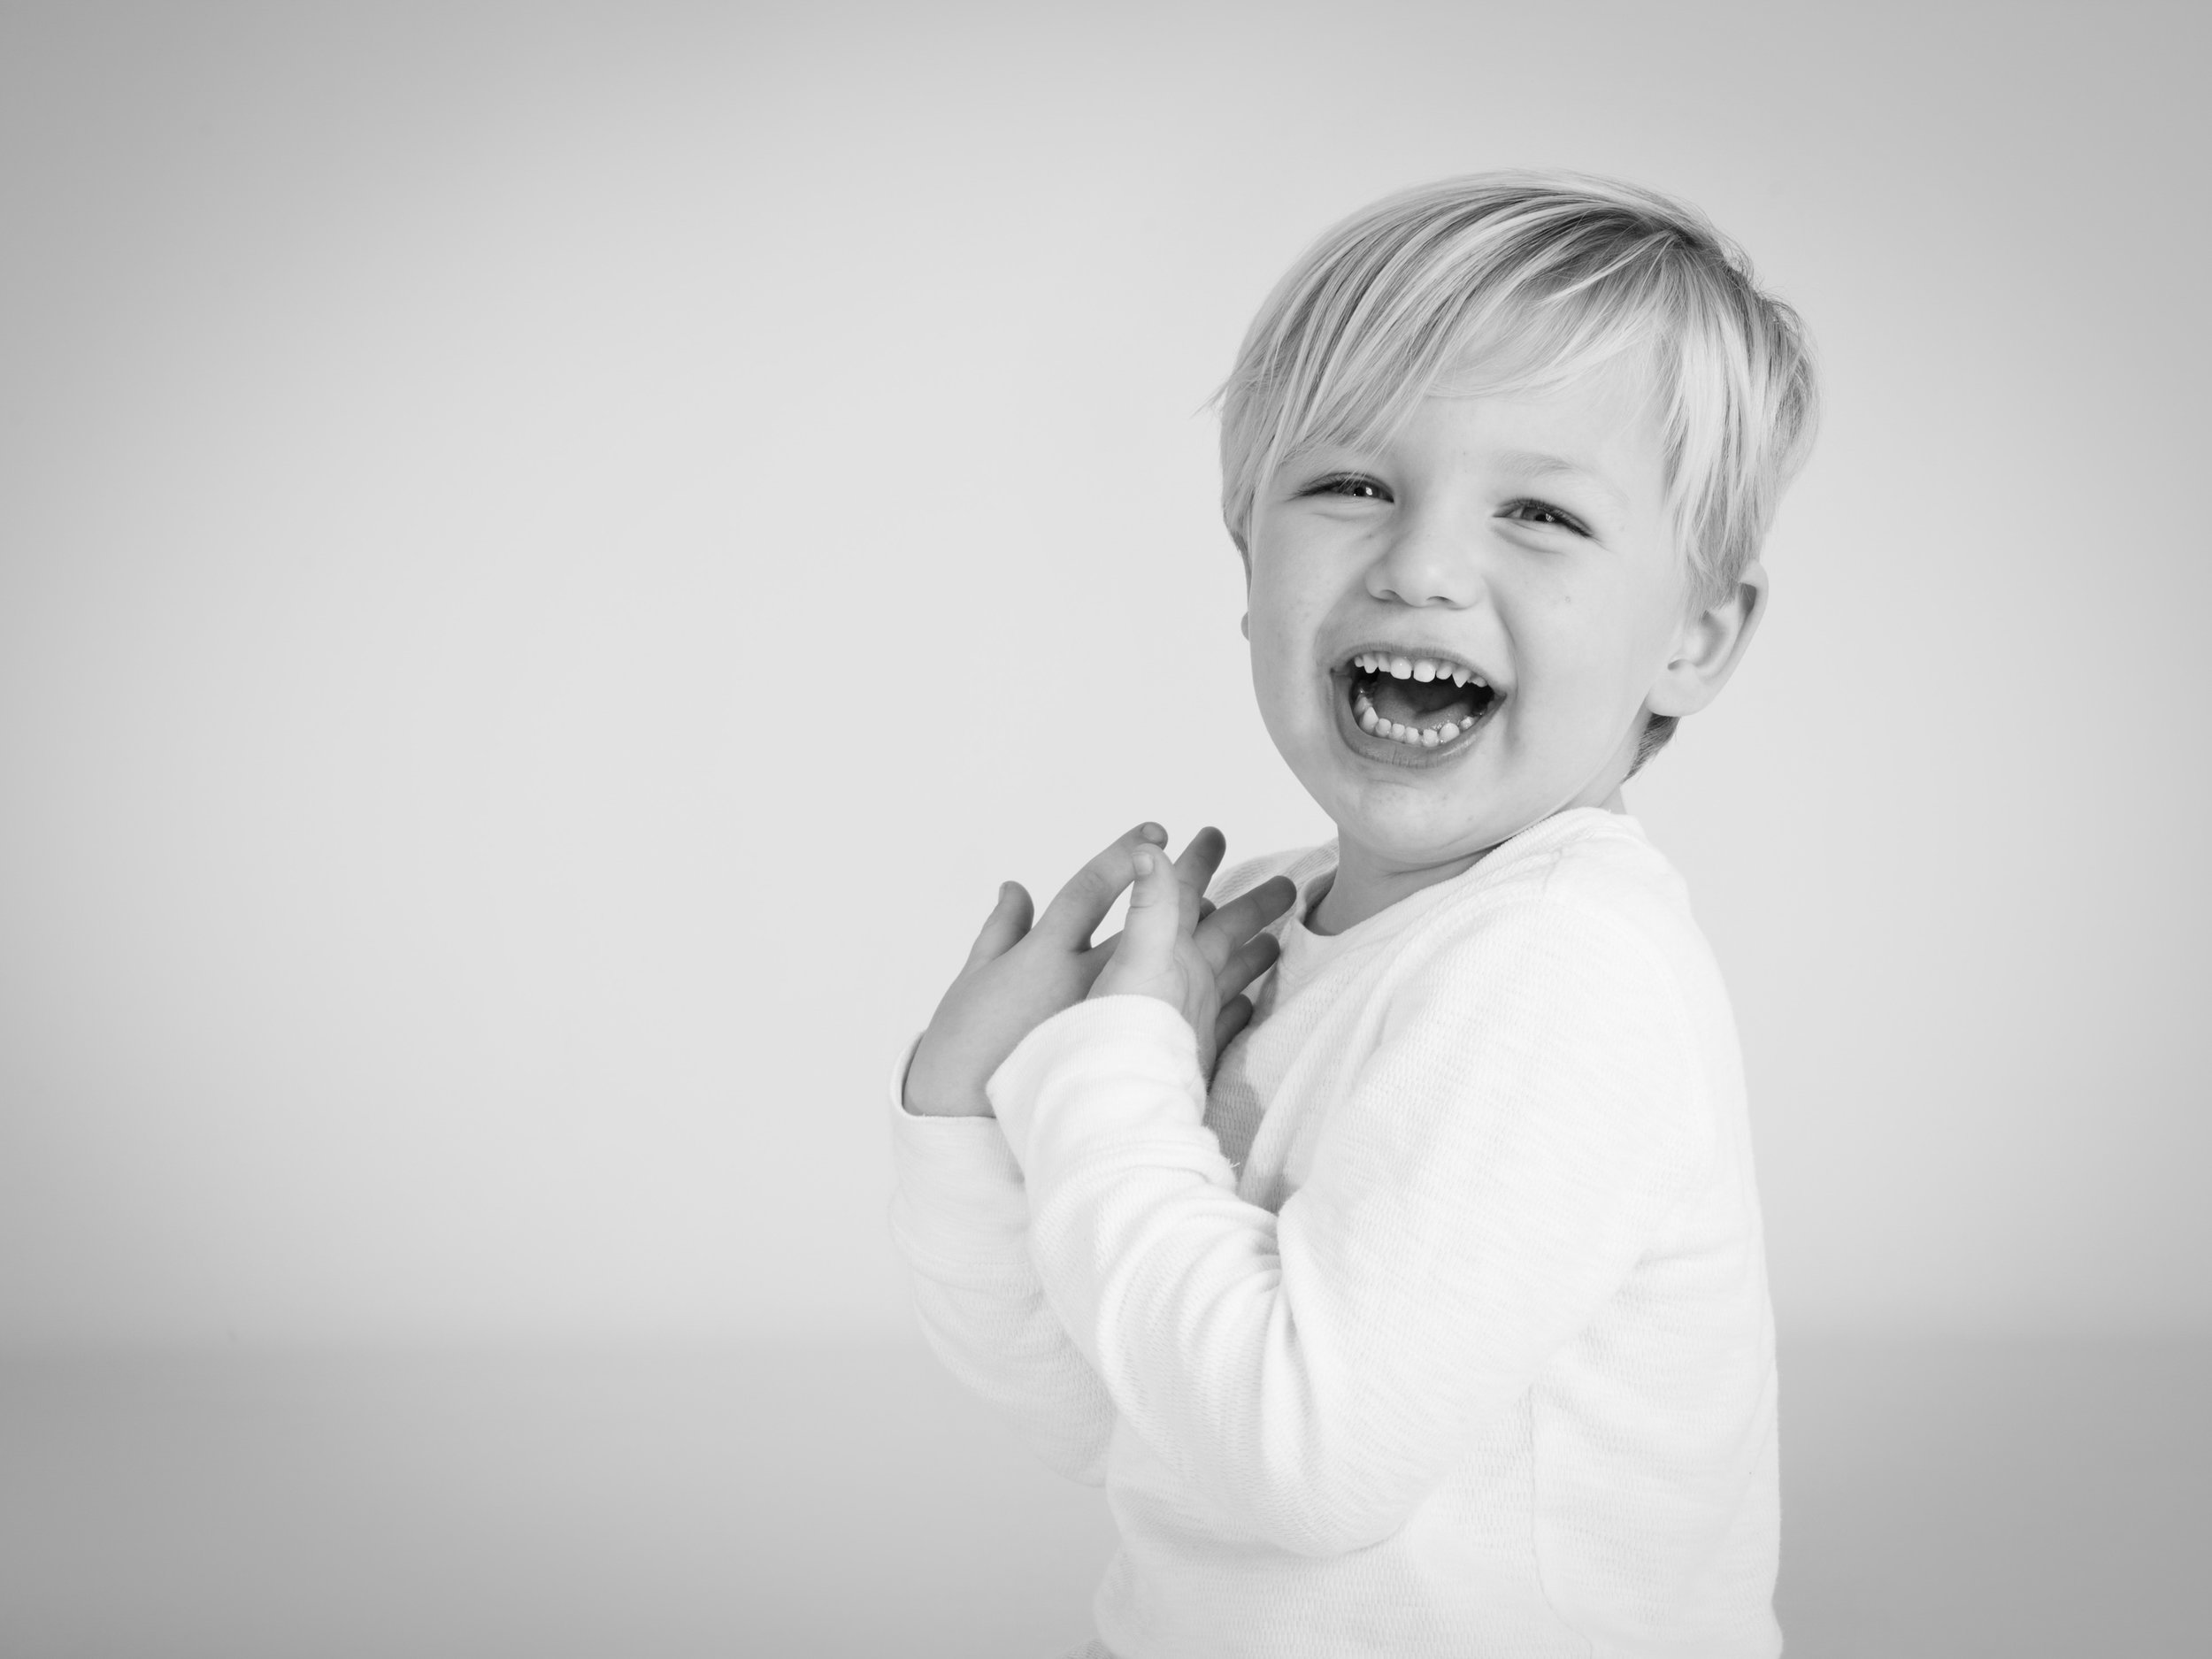 Copy of Blonde boy laughing during his photo portrait